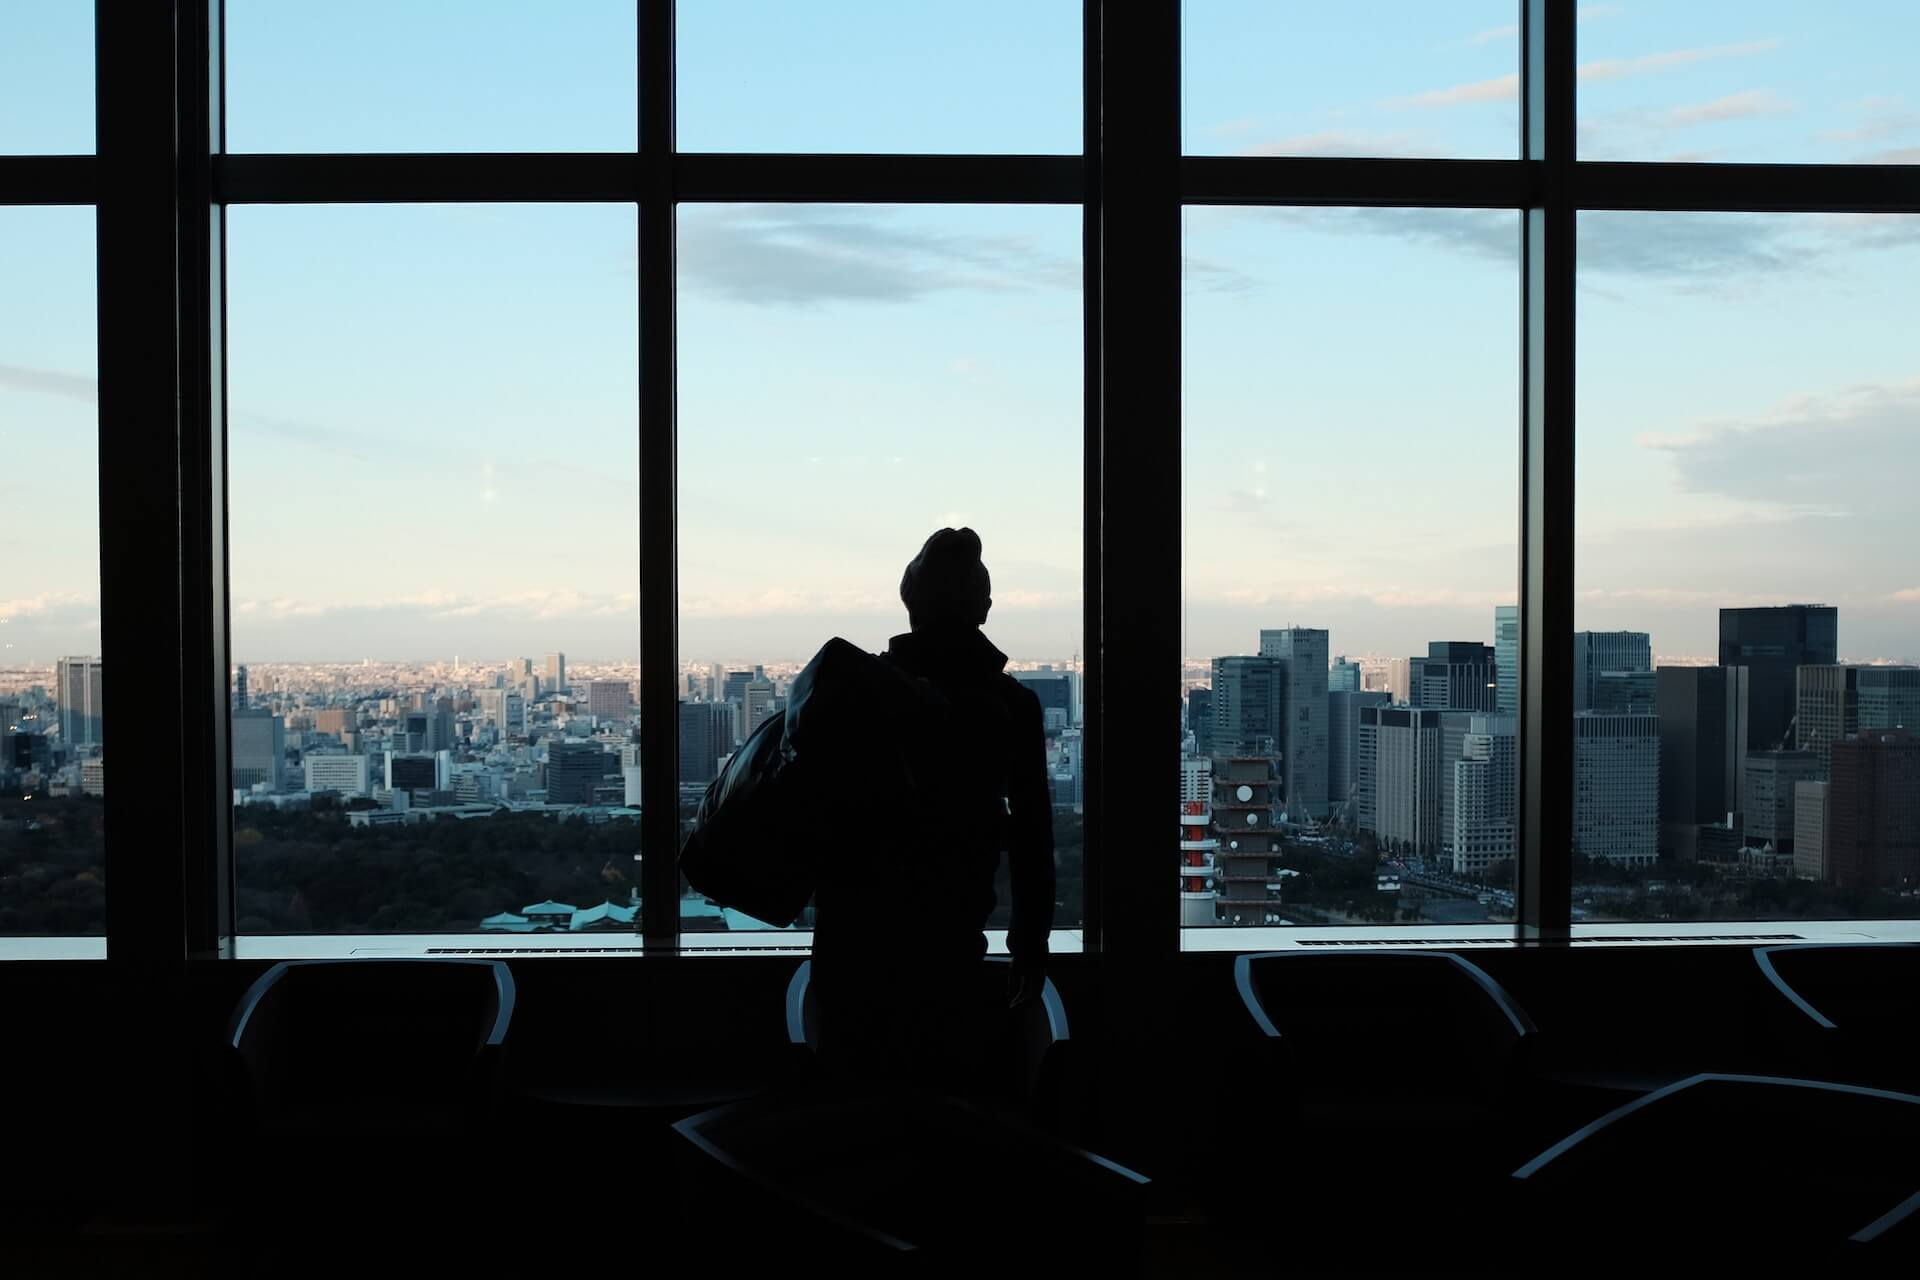 Woman looking at the city from an airport window